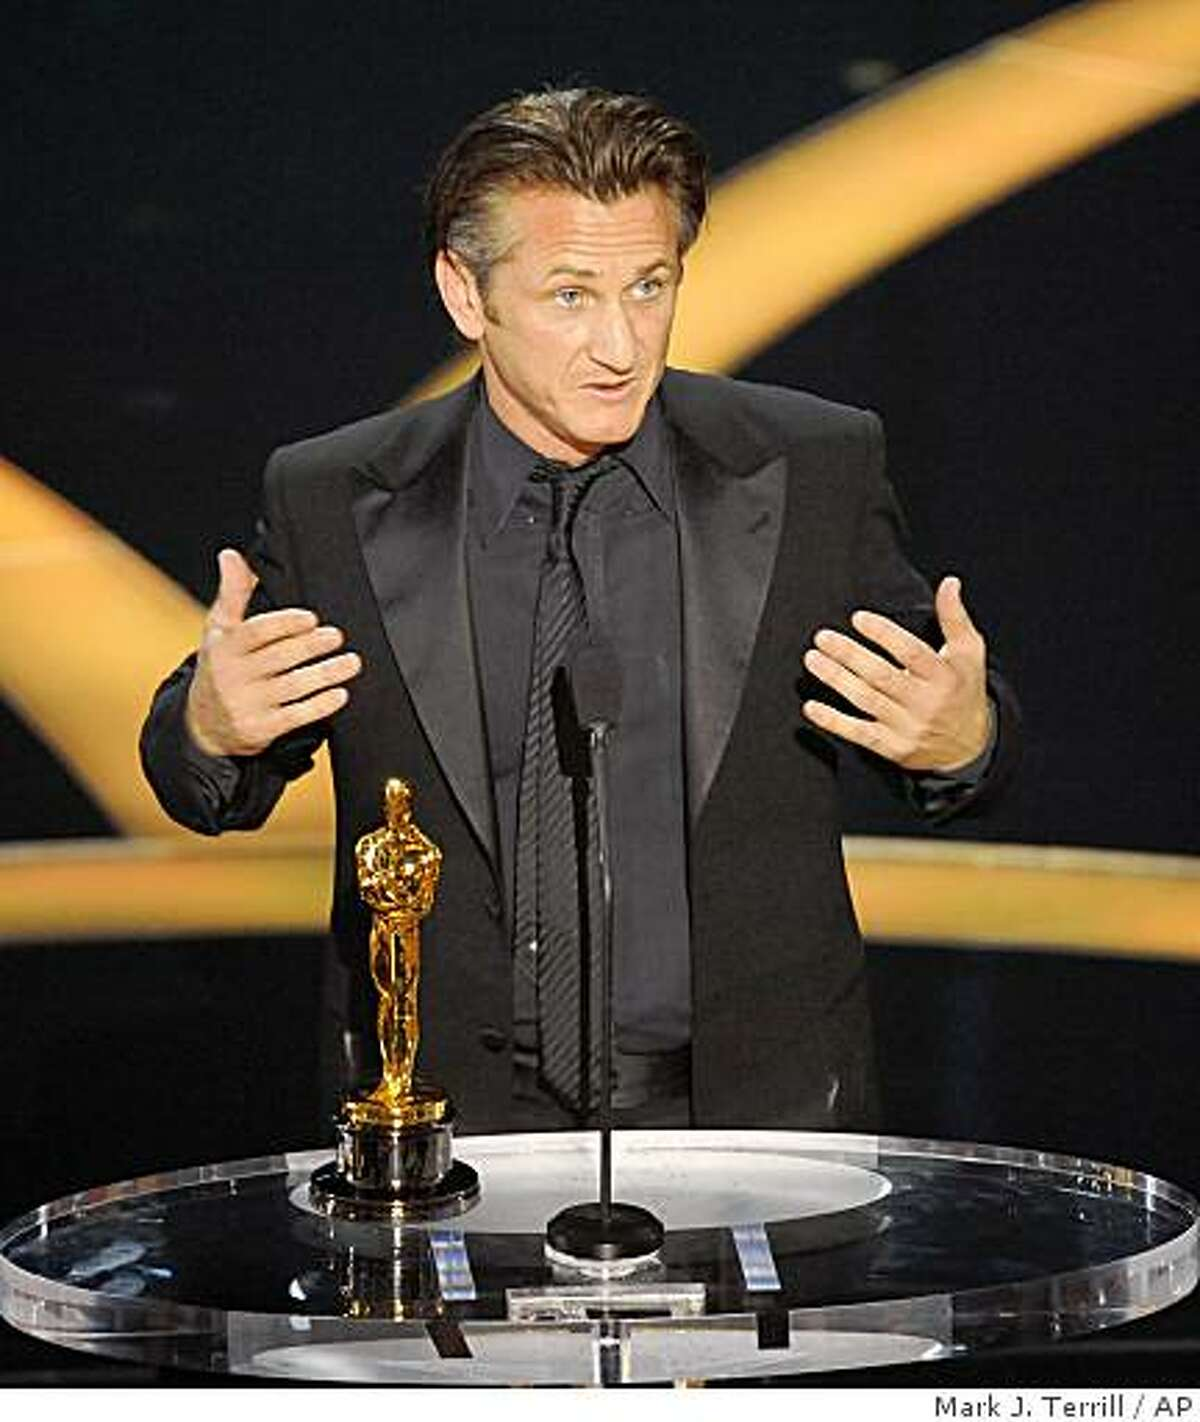 """Sean Penn accepts the Oscar for best actor for his work in """"Milk"""" during the 81st Academy Awards Sunday, Feb. 22, 2009, in the Hollywood section of Los Angeles. (AP Photo/Mark J. Terrill)"""